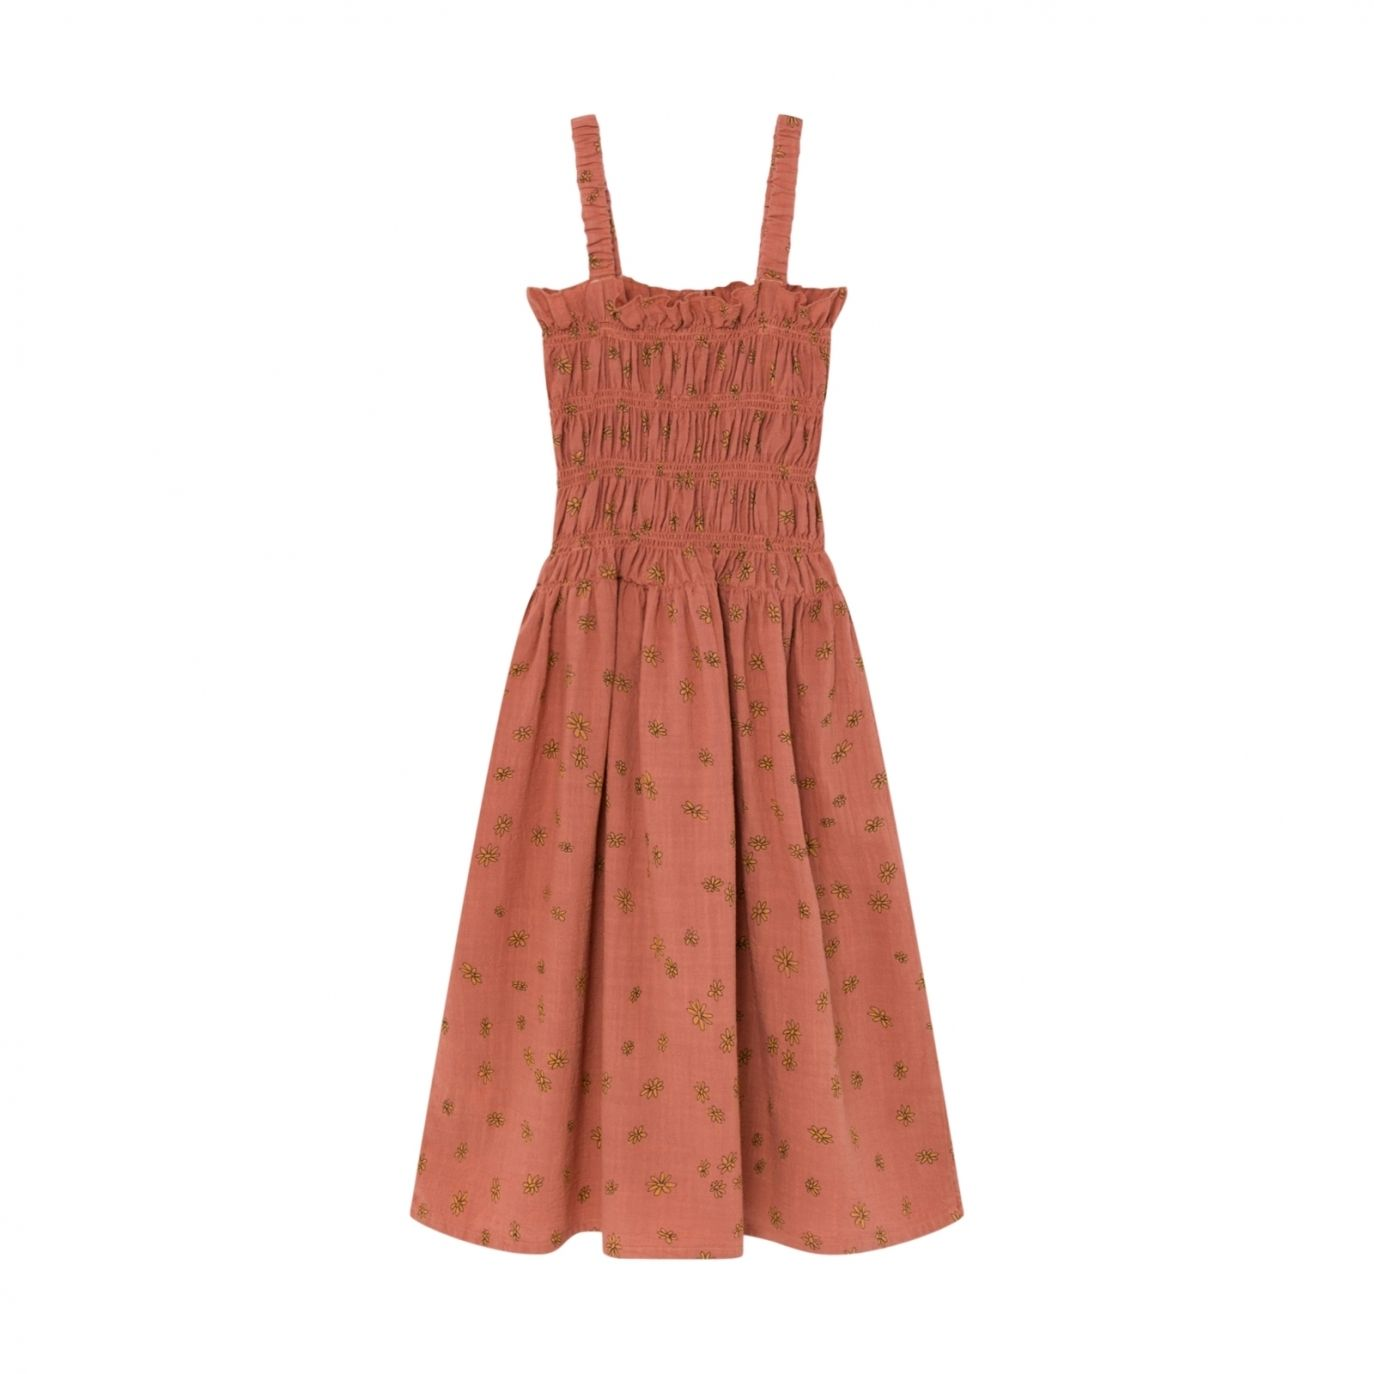 Bobo Choses - All Over Daisy Smoked Dress Brown - 1